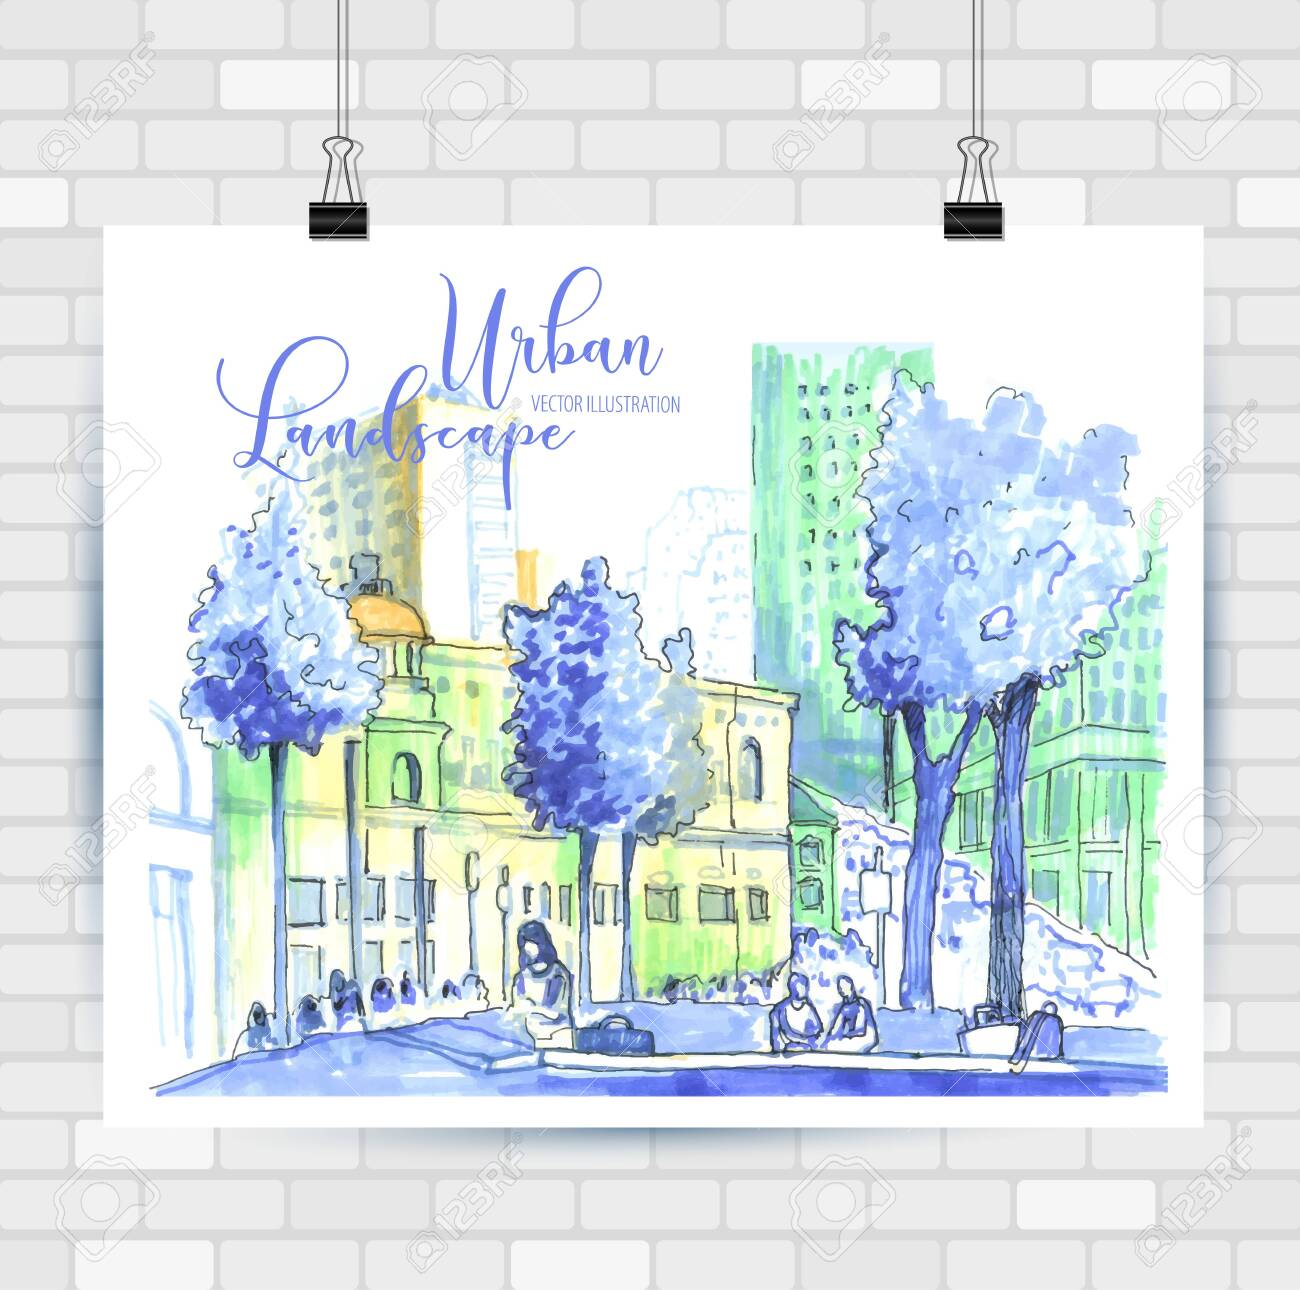 City sketch in hand drawn style. Travel inspiration. - 122480526